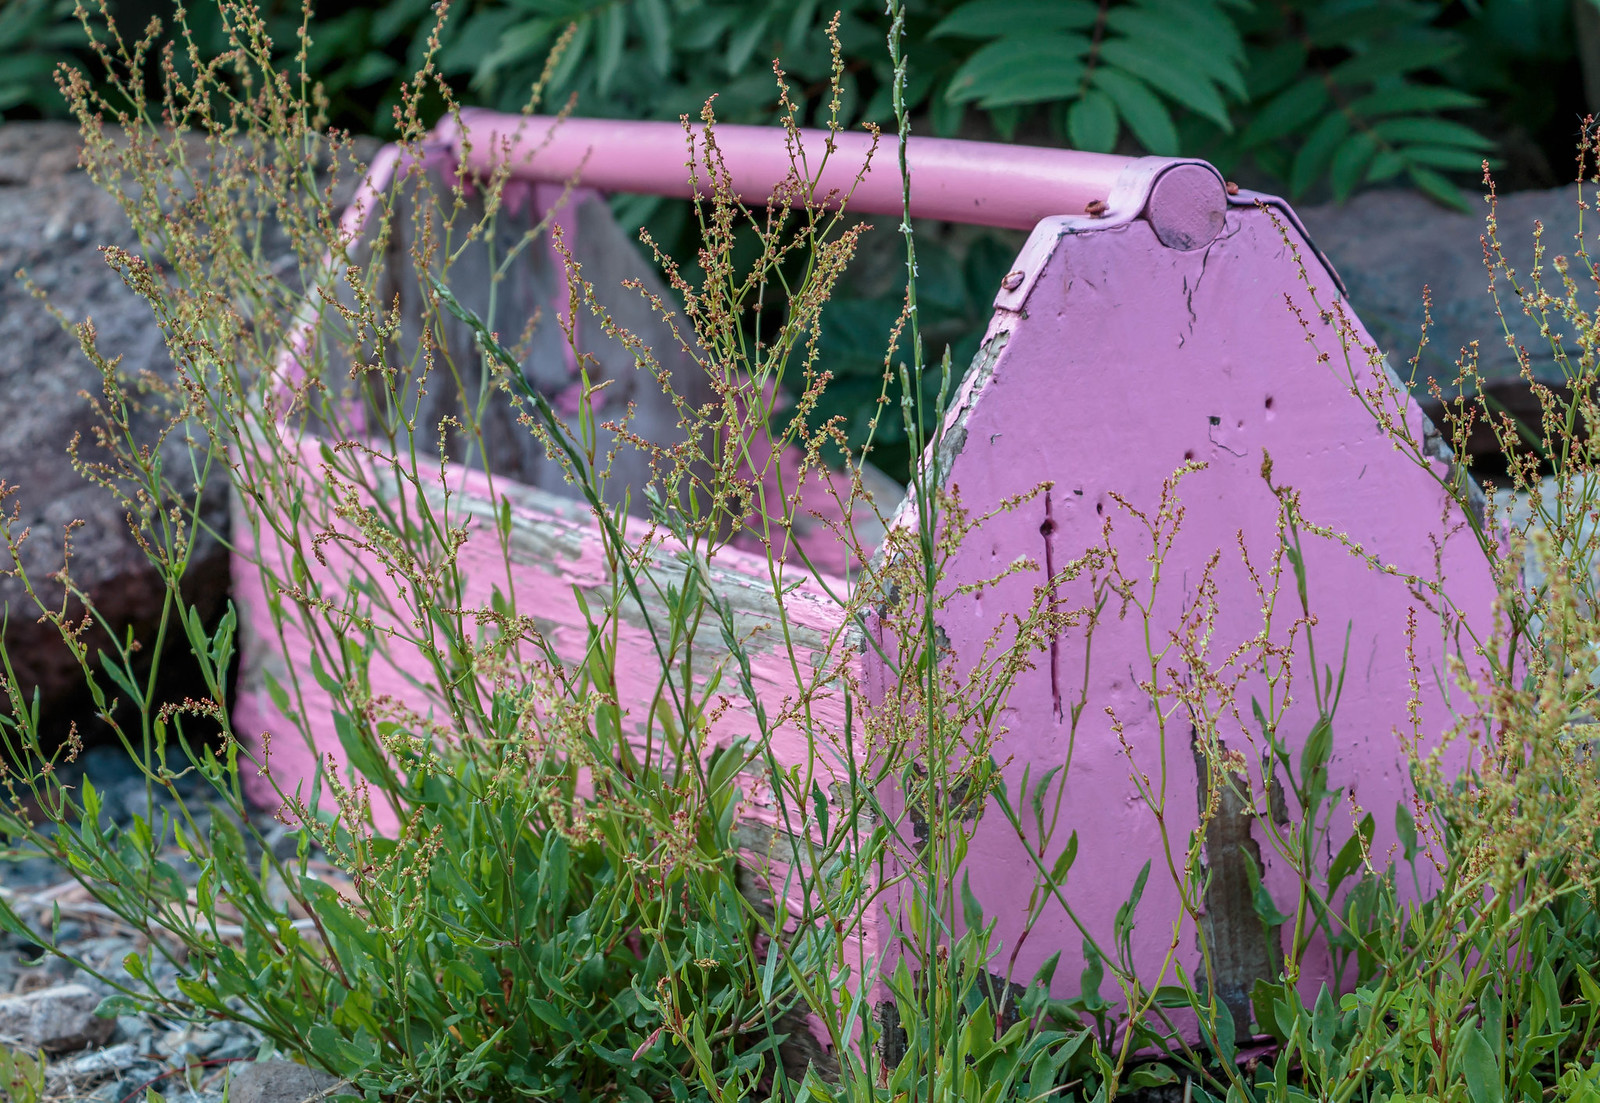 pink toolbox in the weeds